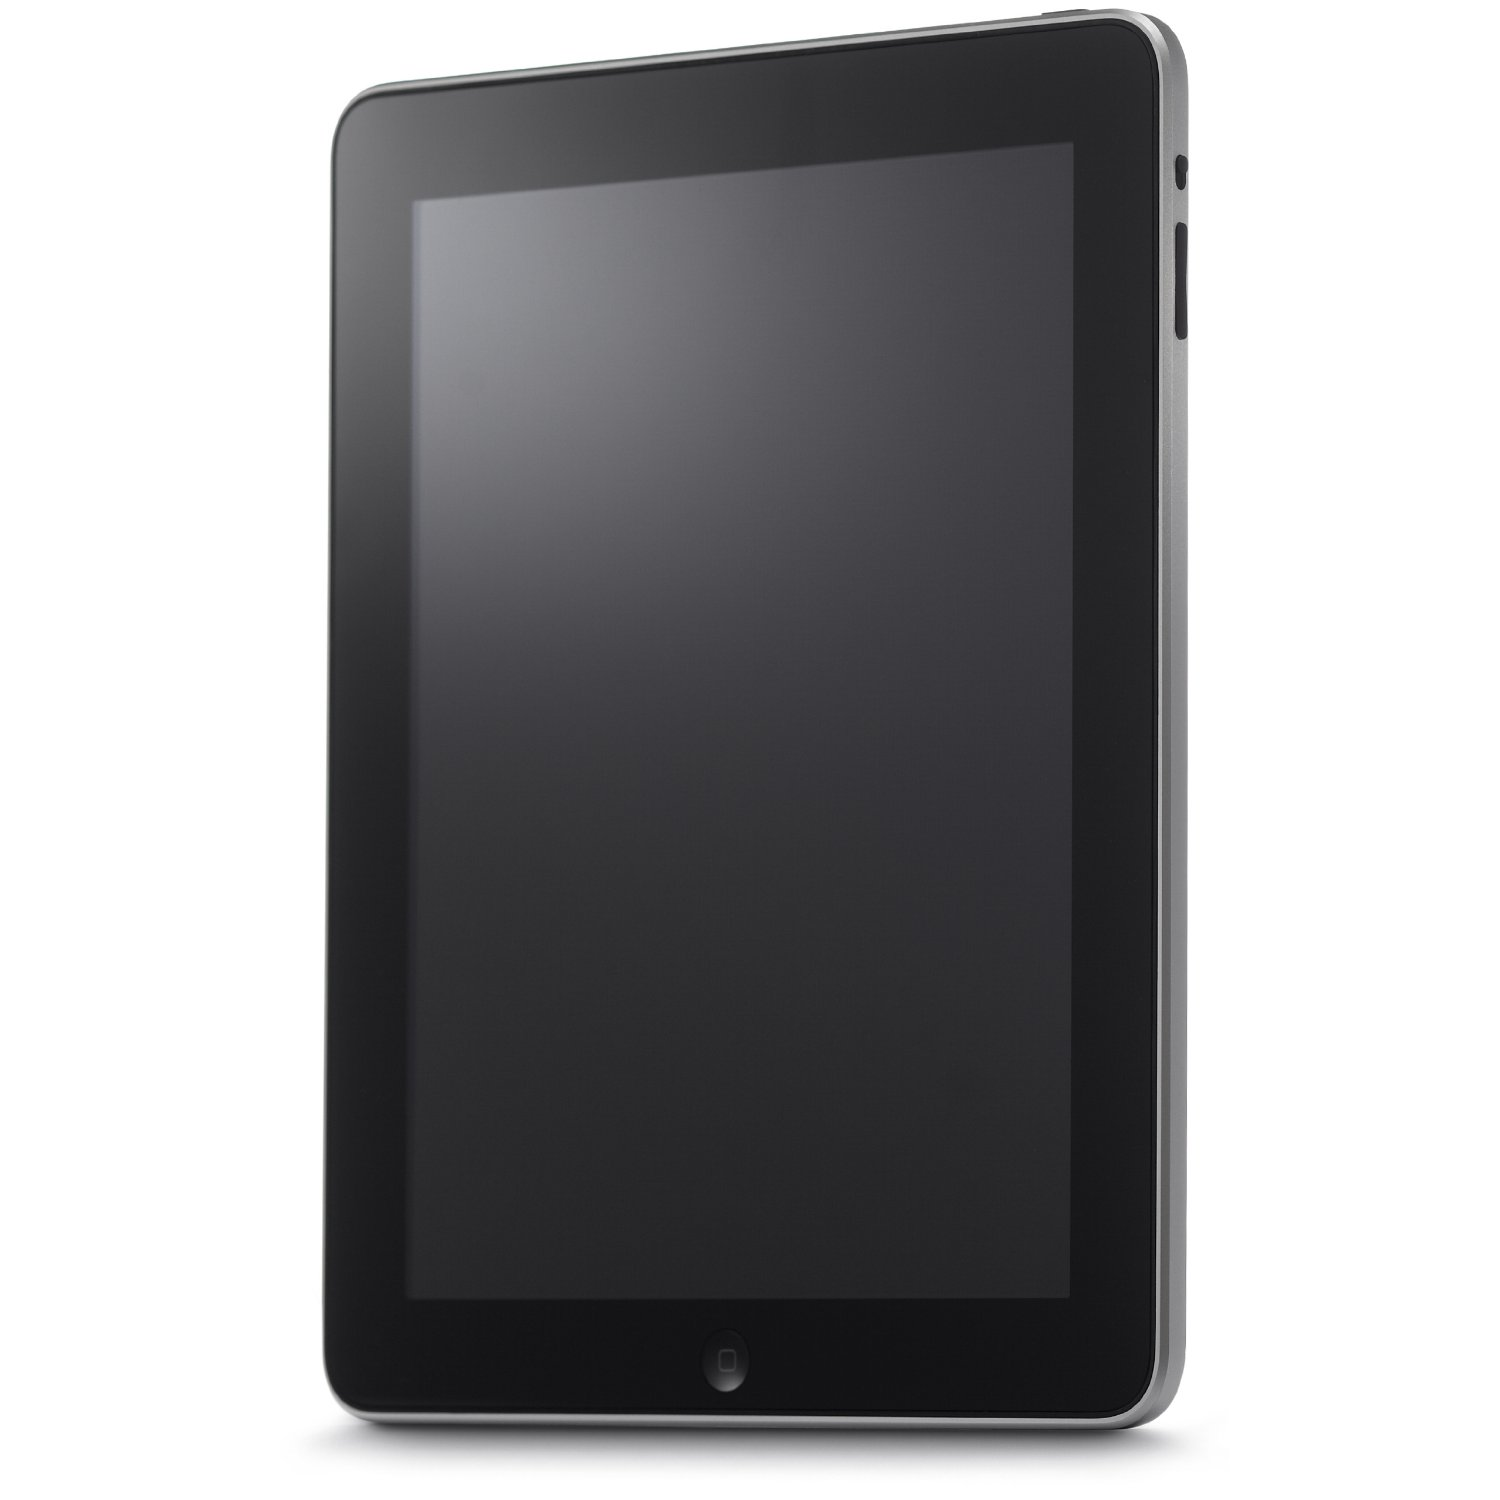 Appleipad1stgeneration64gb 1500x1500